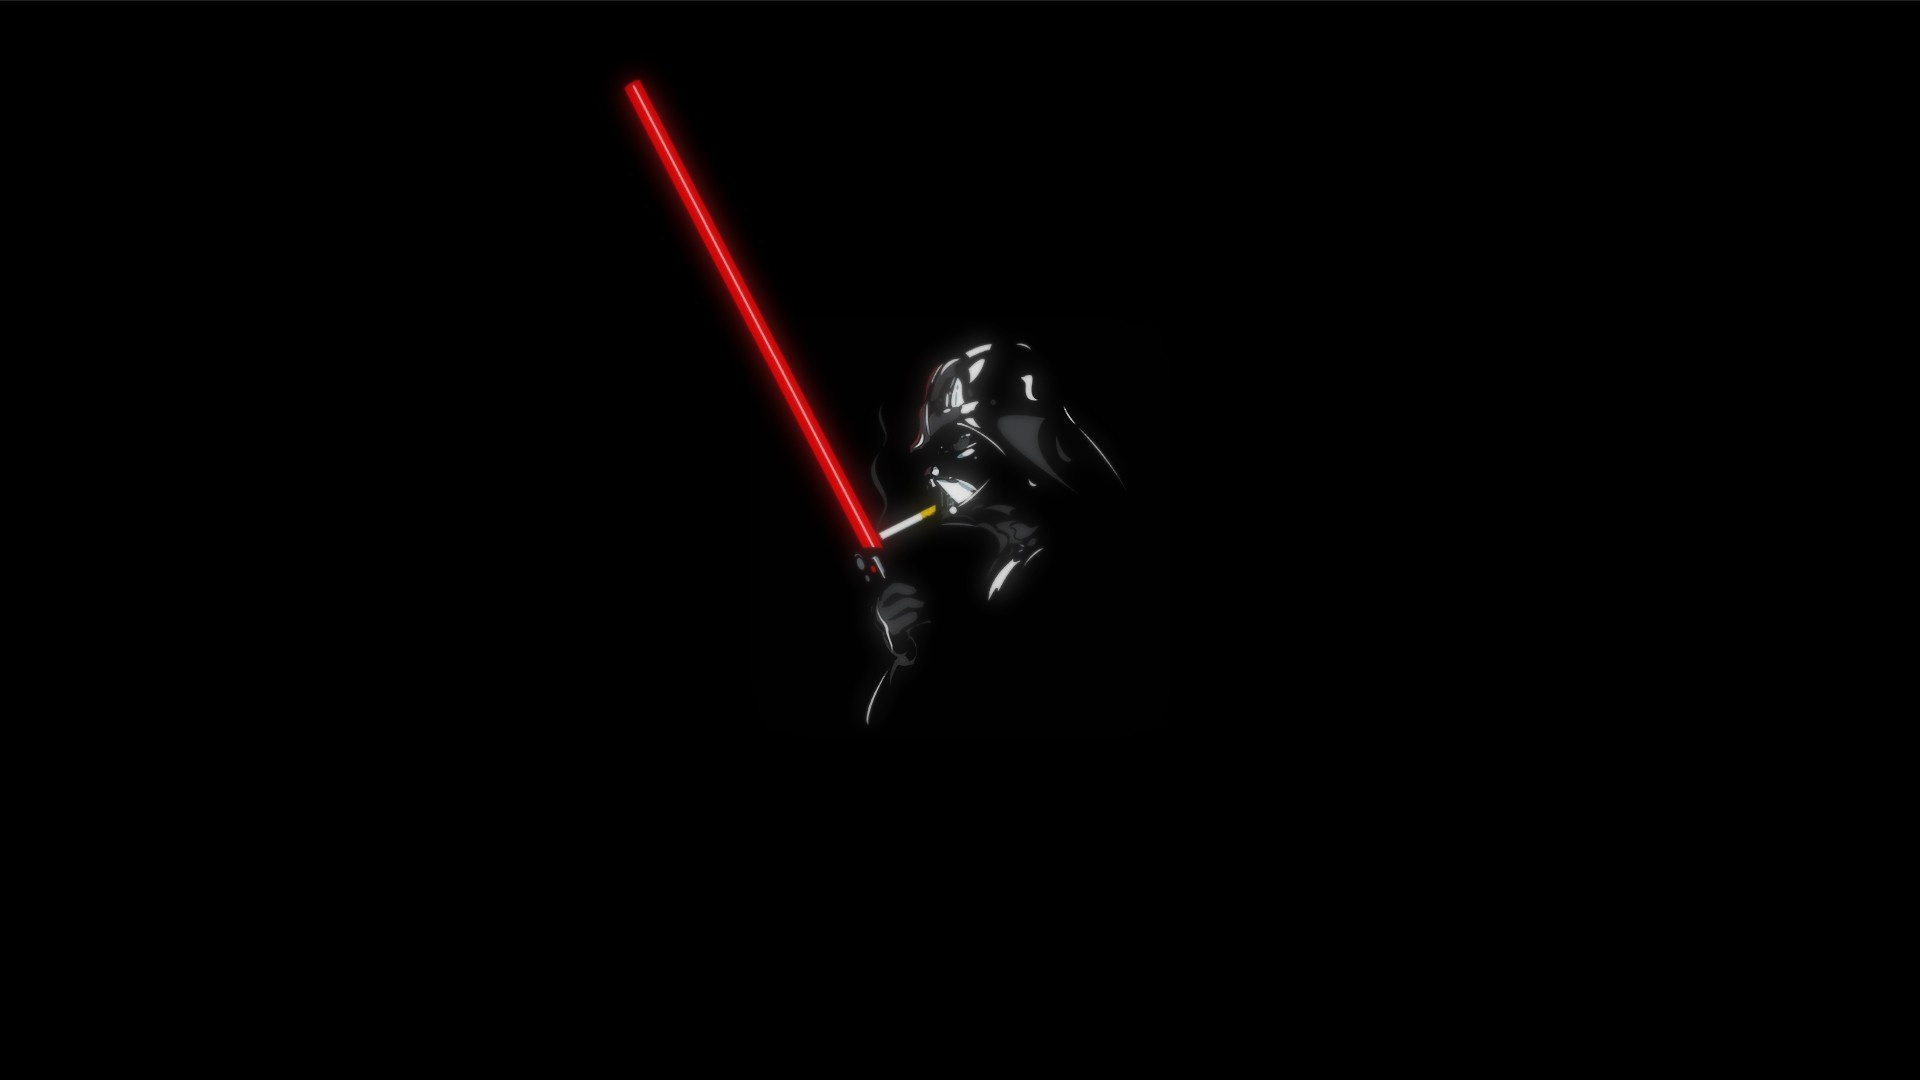 Lightsaber Hd Wallpaper 80 Images